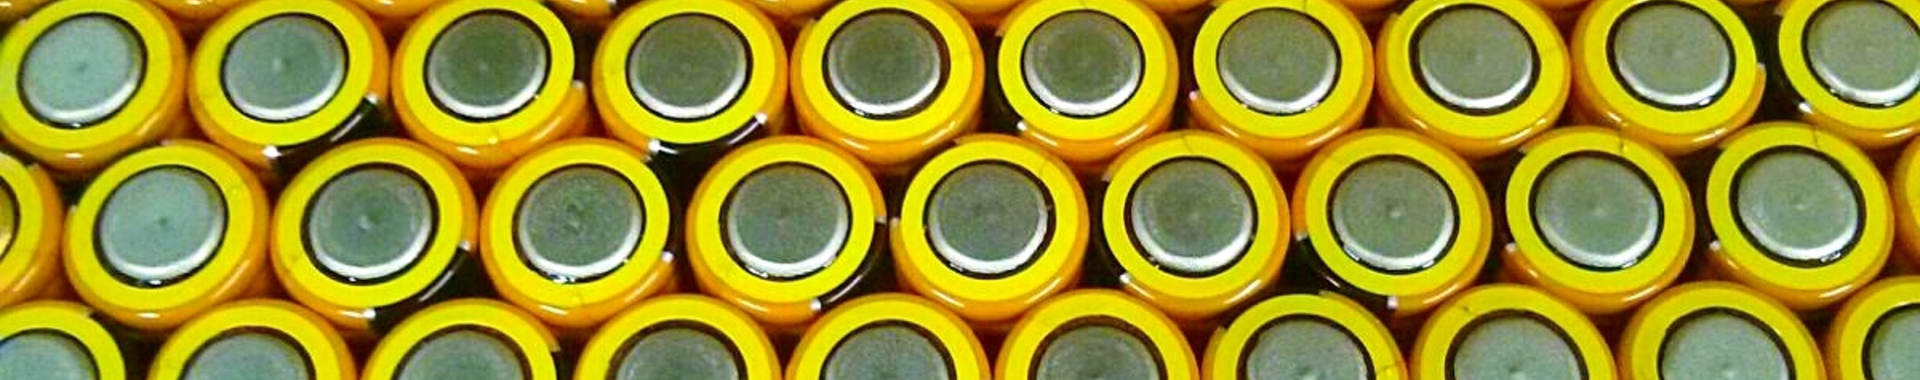 Close up of the bottoms of batteries